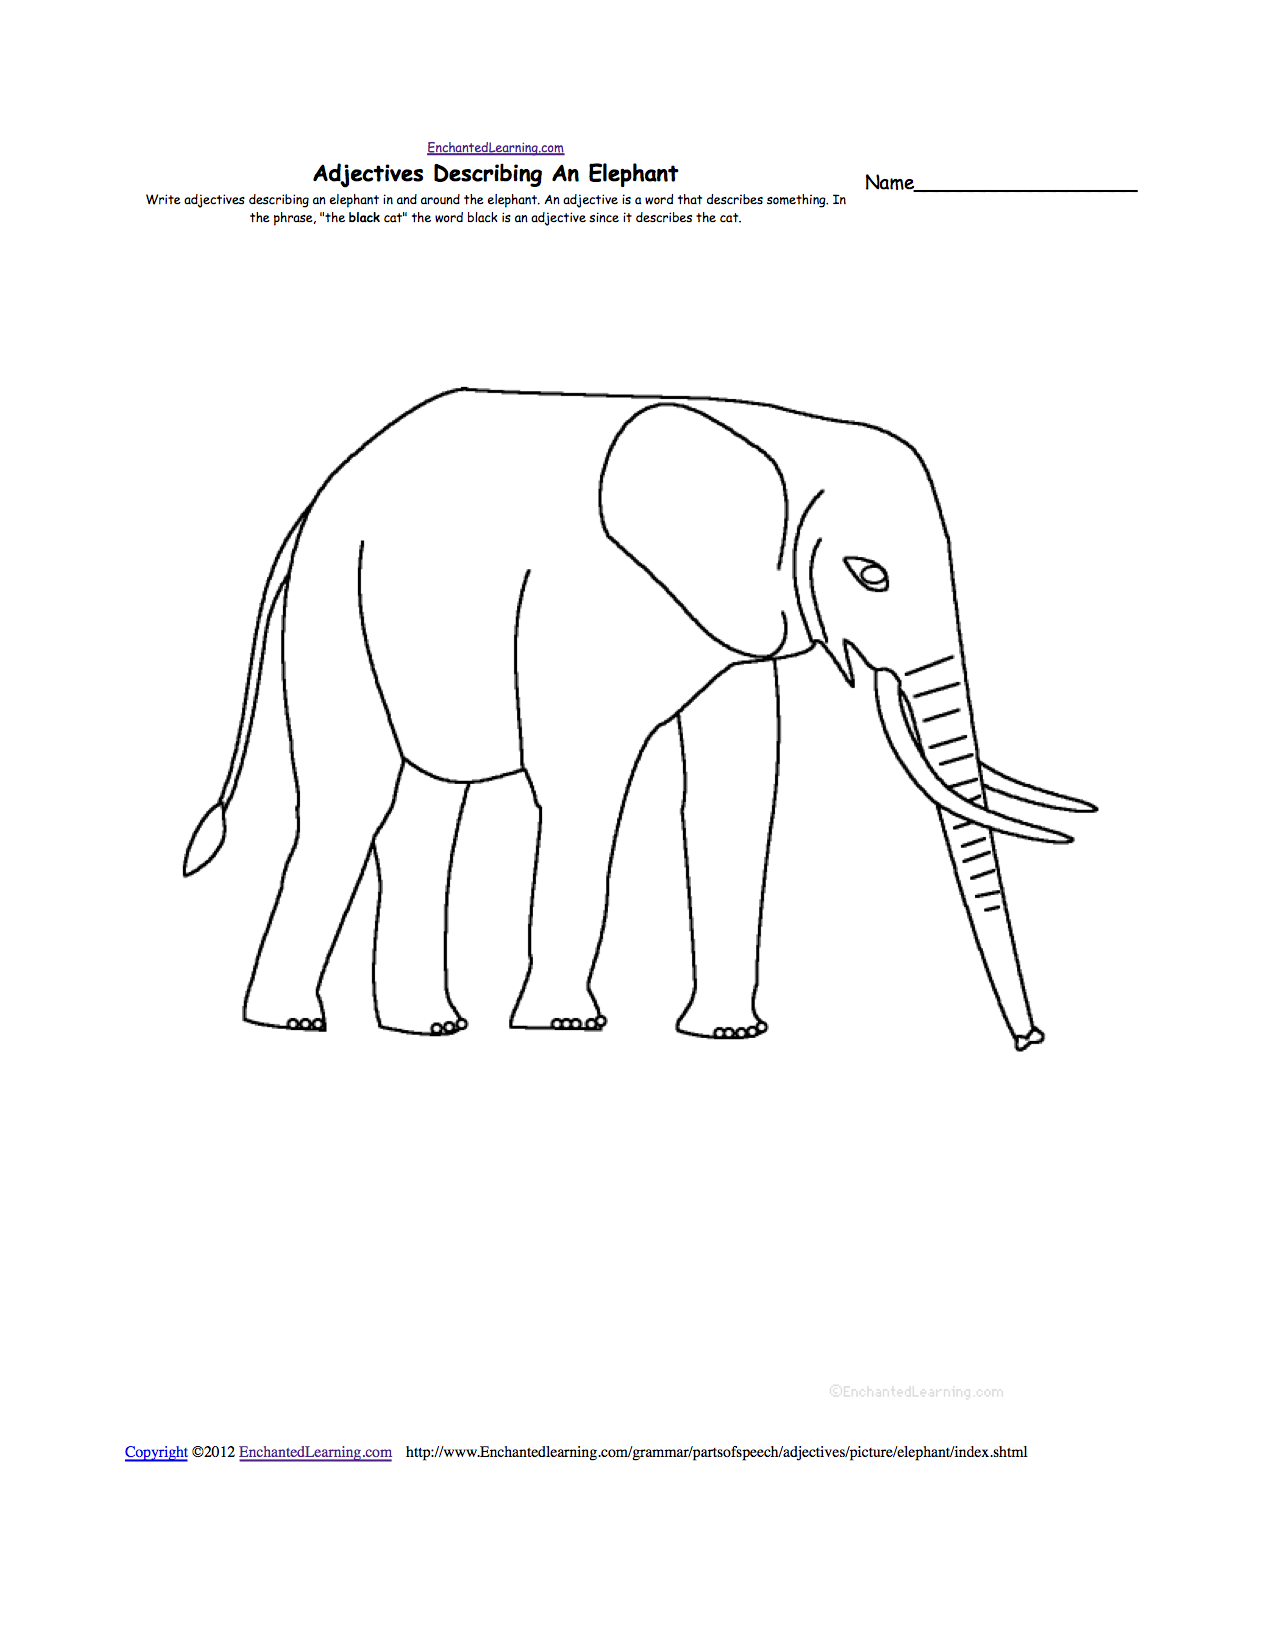 Elephant write adjectives describing the picture in and around the picture